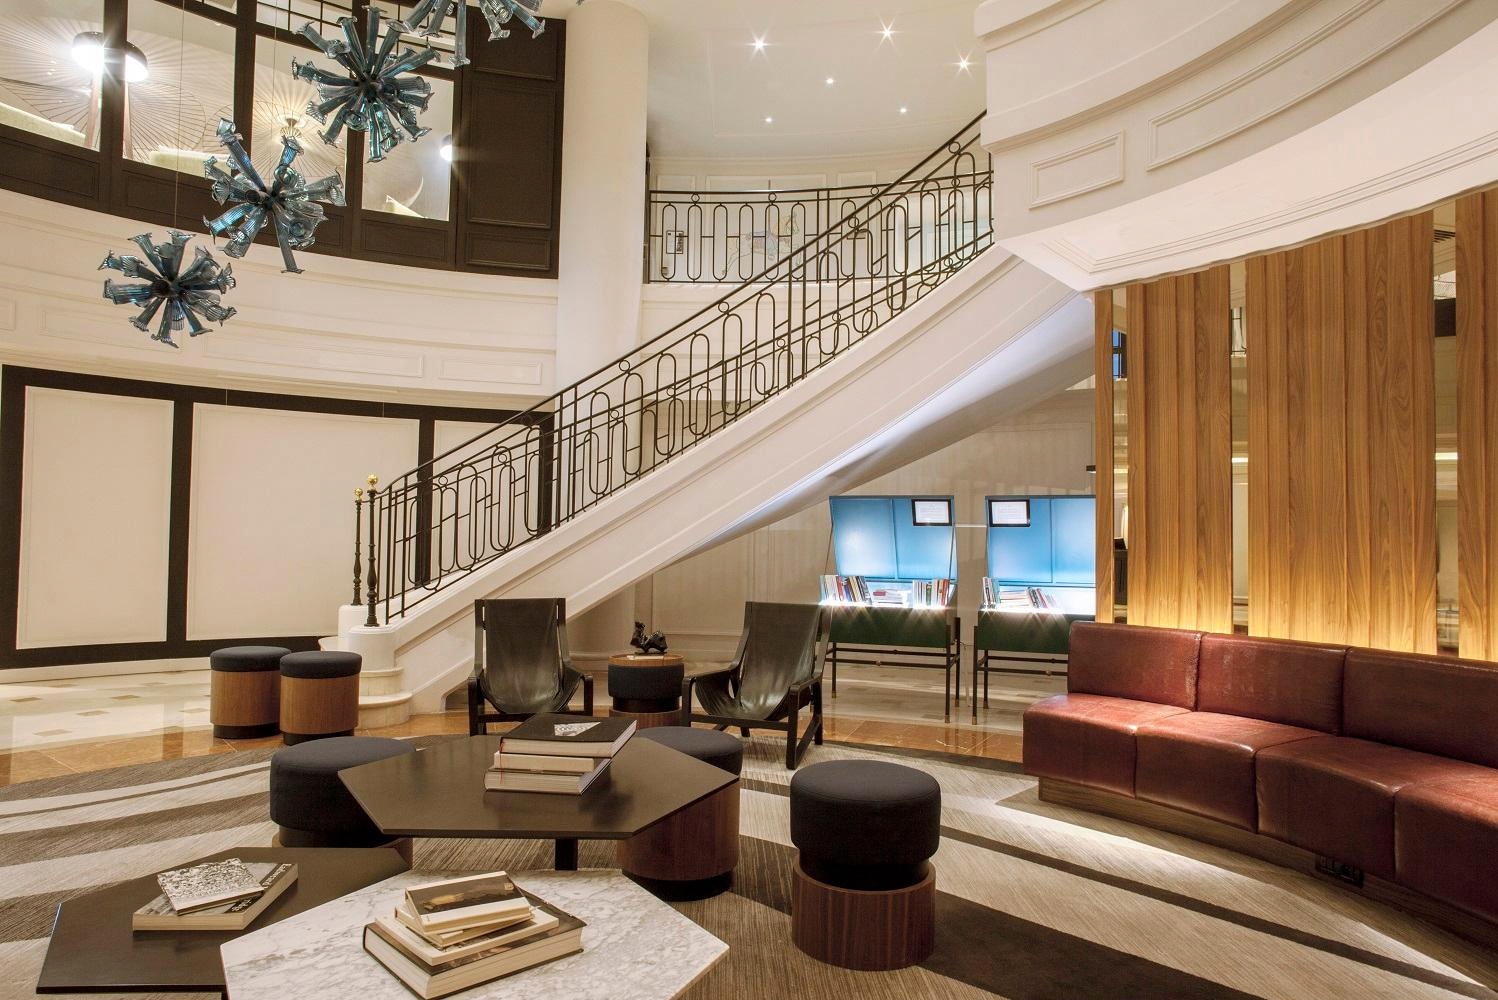 The renovation involved a partial renovation of the lobby, repositioning the existing executive lounge, and creating a restaurant.